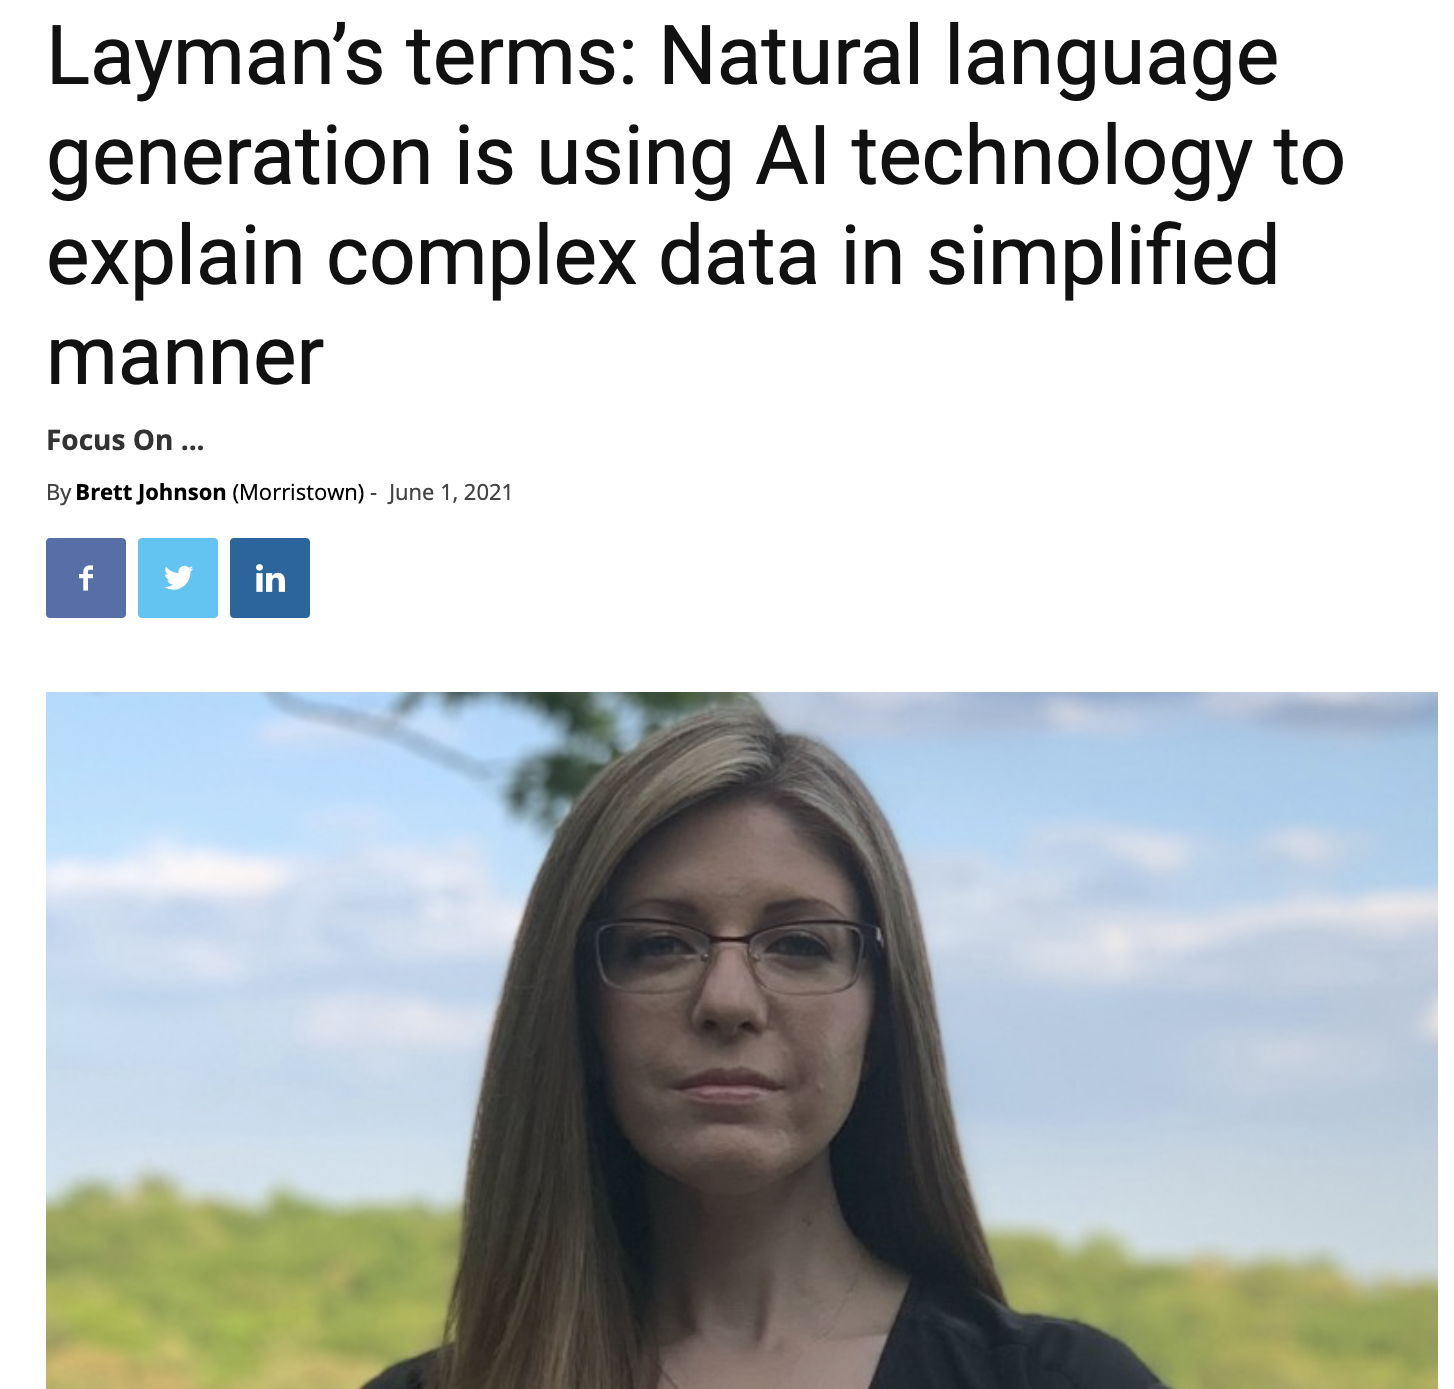 Layman's terms: Natural language generation is using AI technology to explain complex data in simplified manner